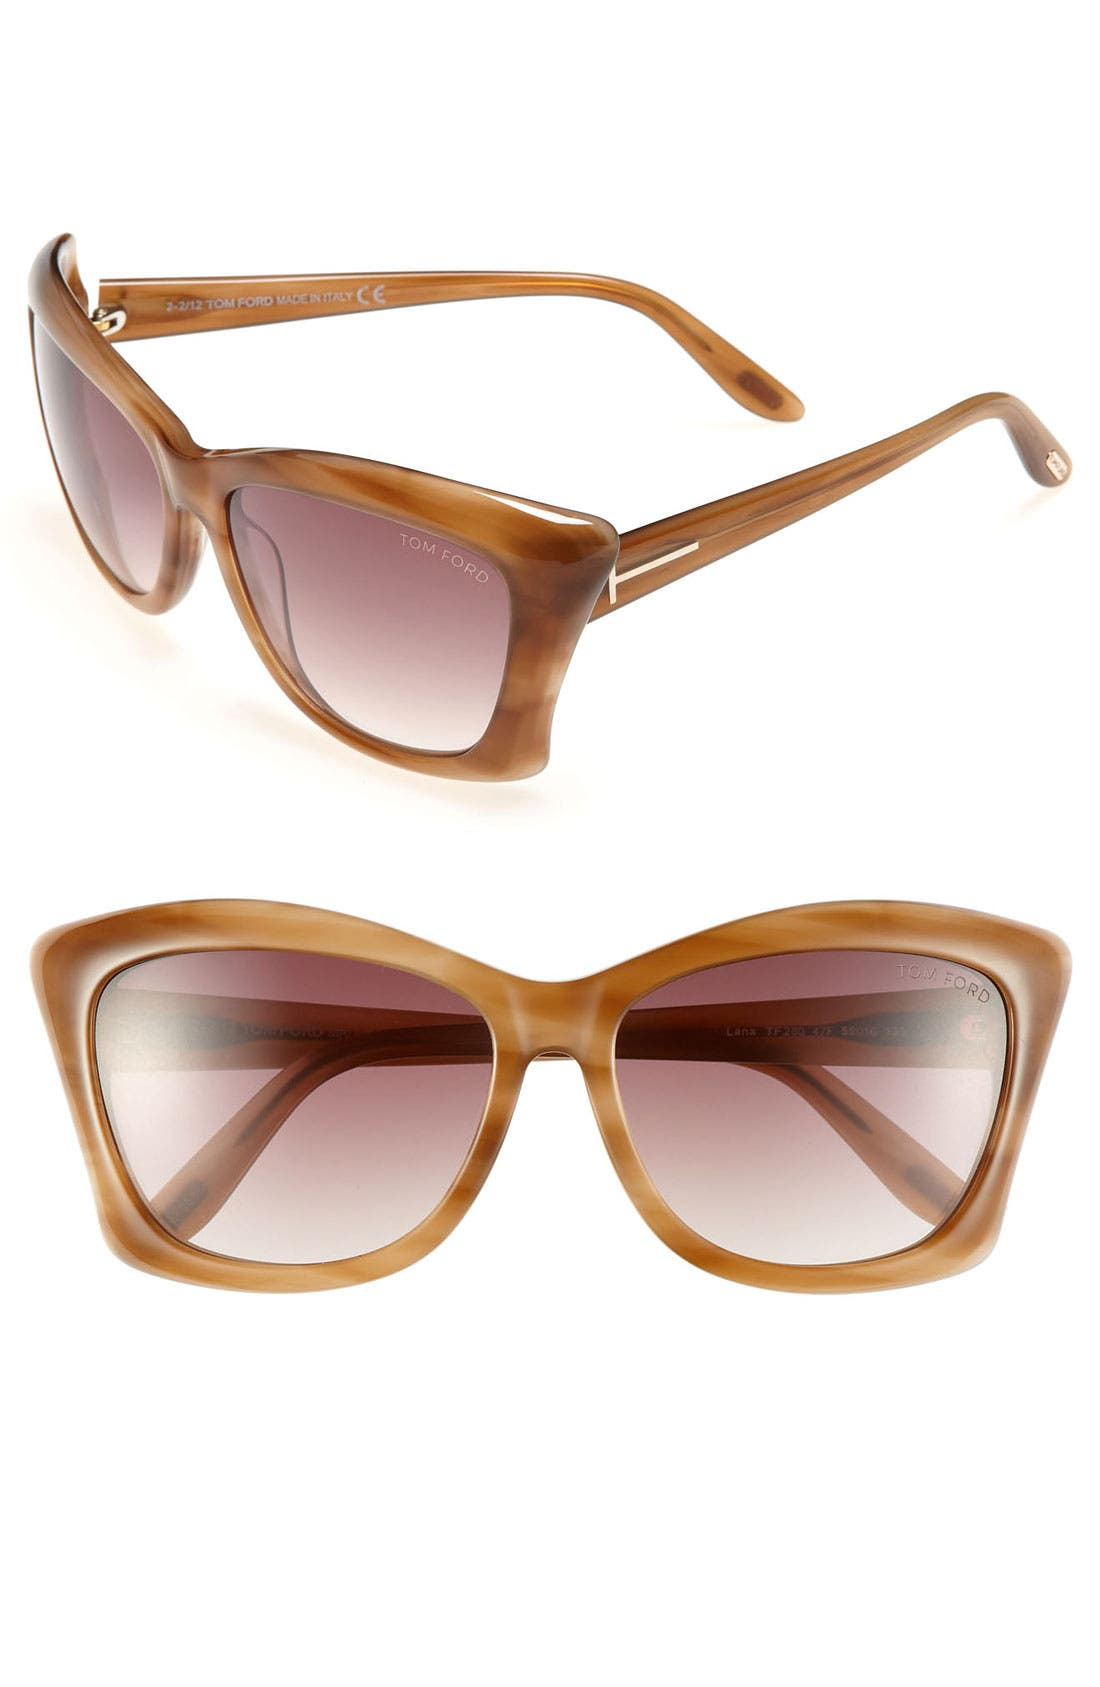 Main Image - Tom Ford 'Lana' 59mm Sunglasses